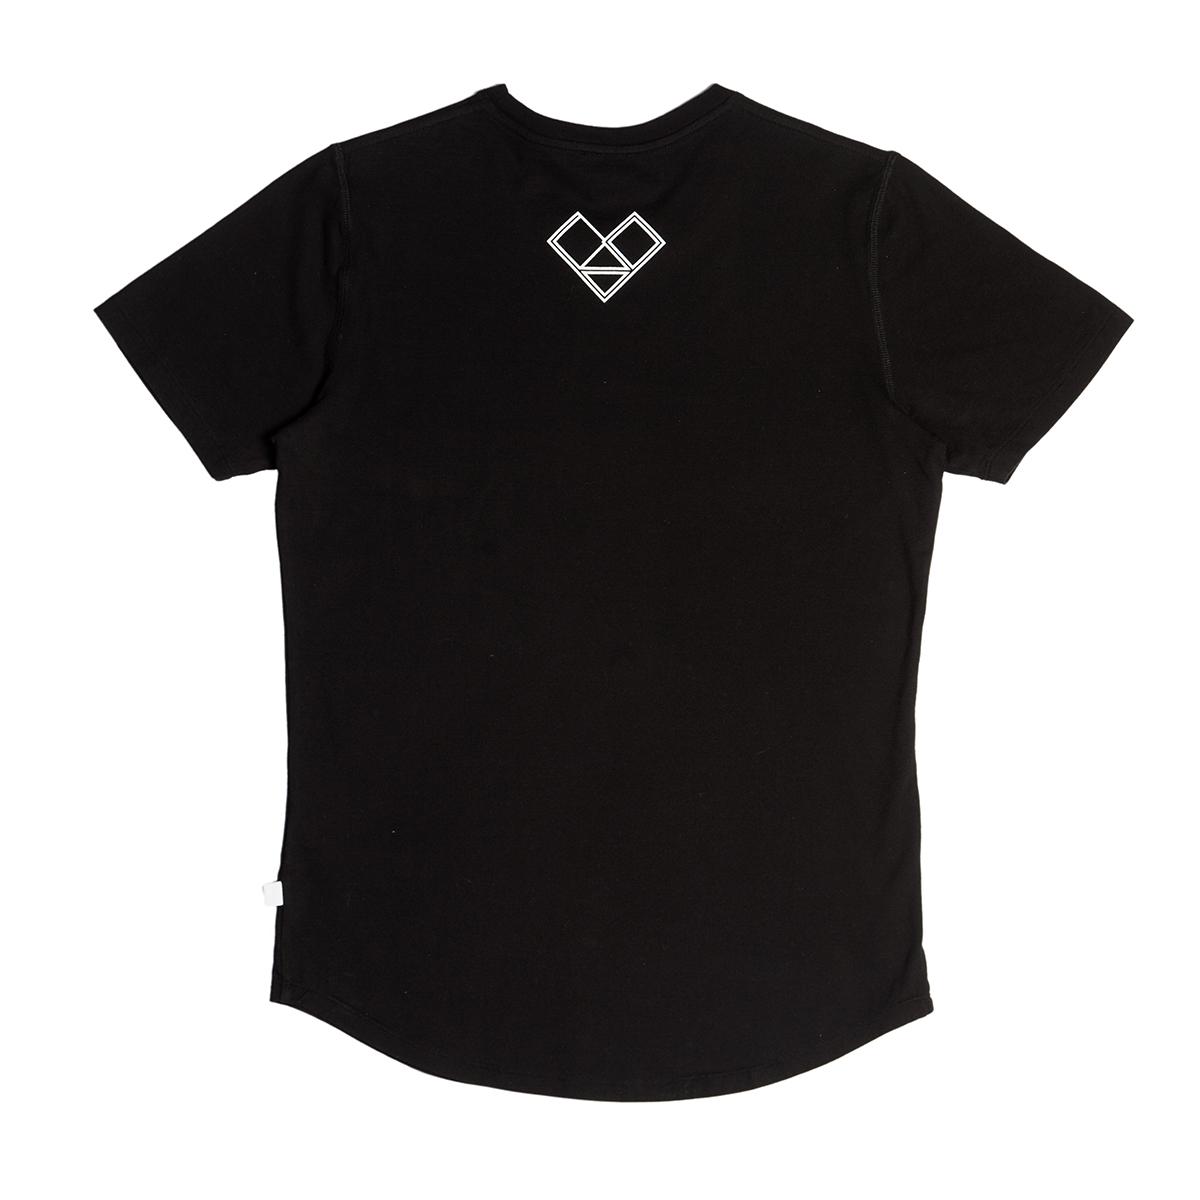 Linda Raff Collection -T-Shirt E-SABATO Black